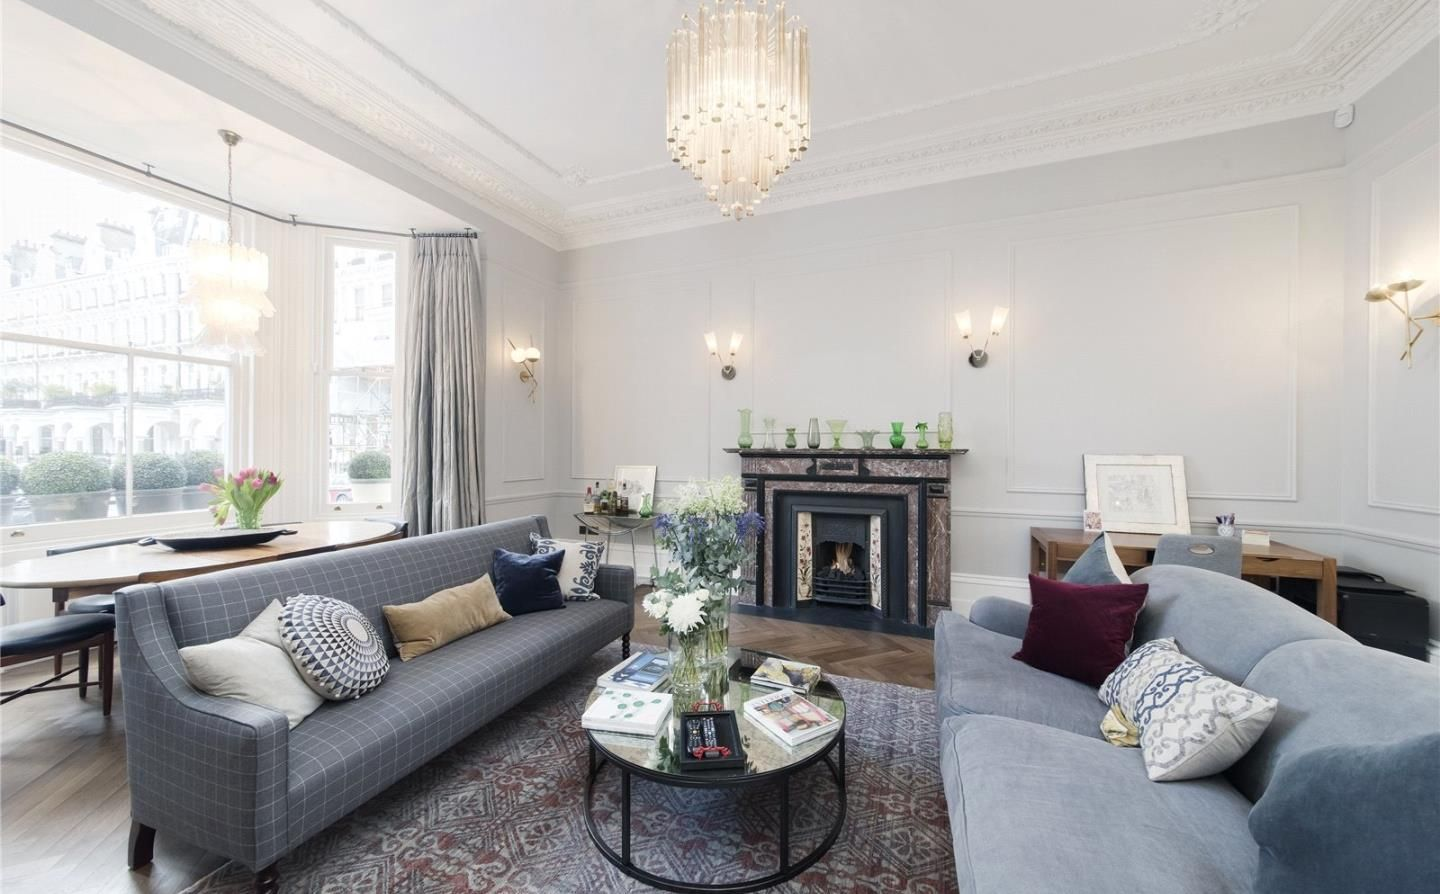 Savills Redcliffe Square London Sw10 9jz Property For Sale